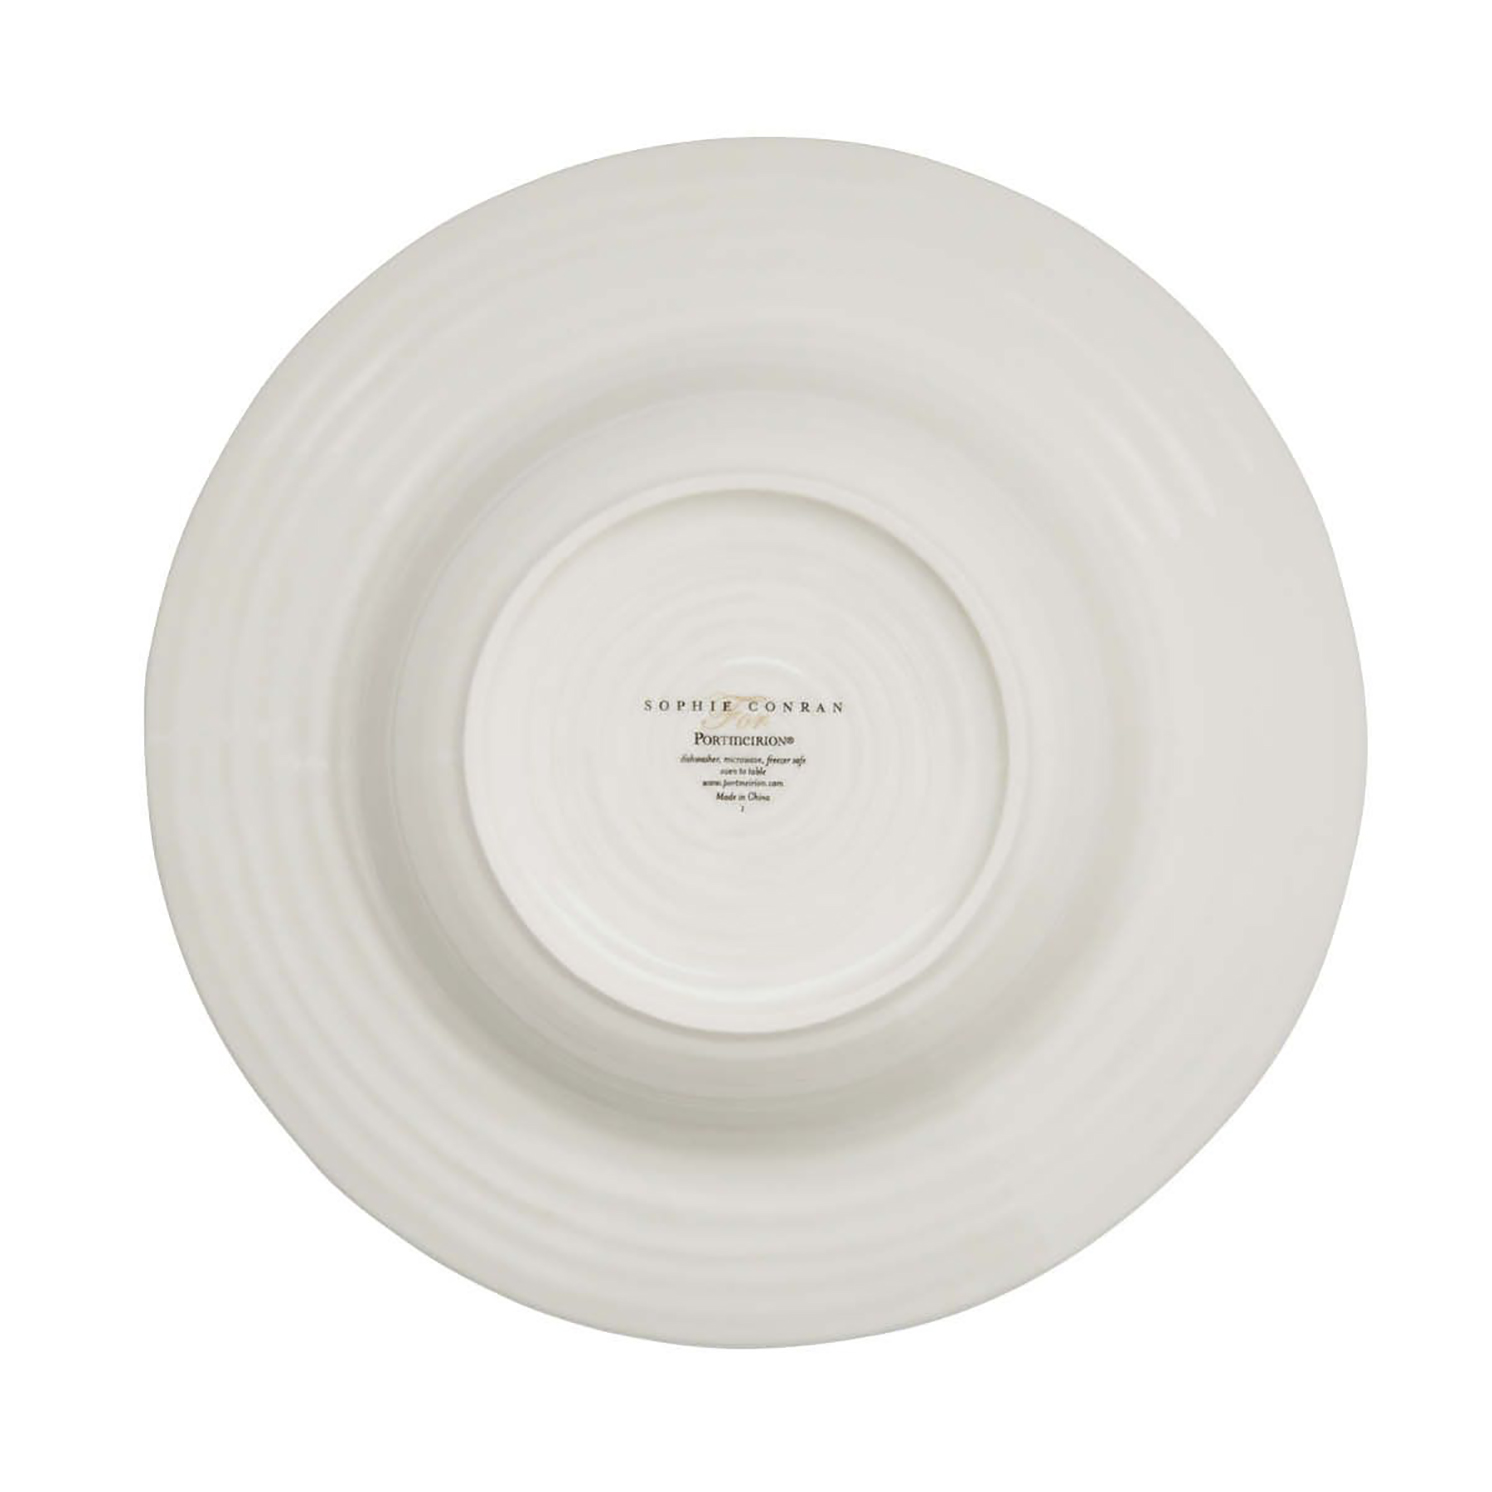 Sophie Conran for Portmeirion – Set of 2 White Bistro Bowls in Gift Box